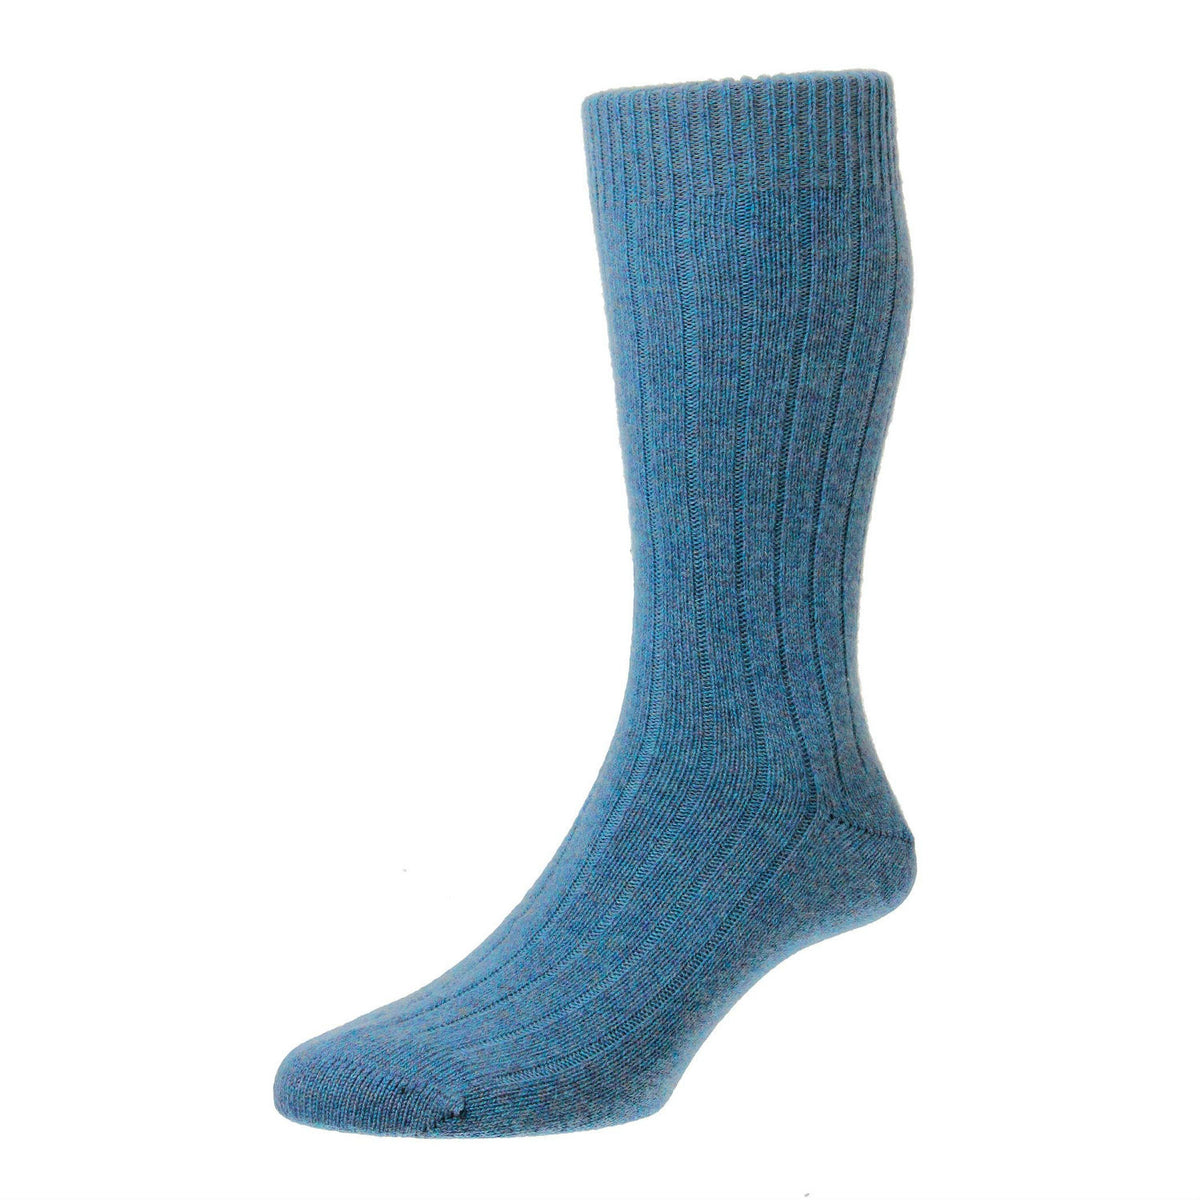 Bright Blue Loch Marl | Mens Cashmere Socks | Made in England | Calf Length Sock | buy now at The Cashmere Choice London